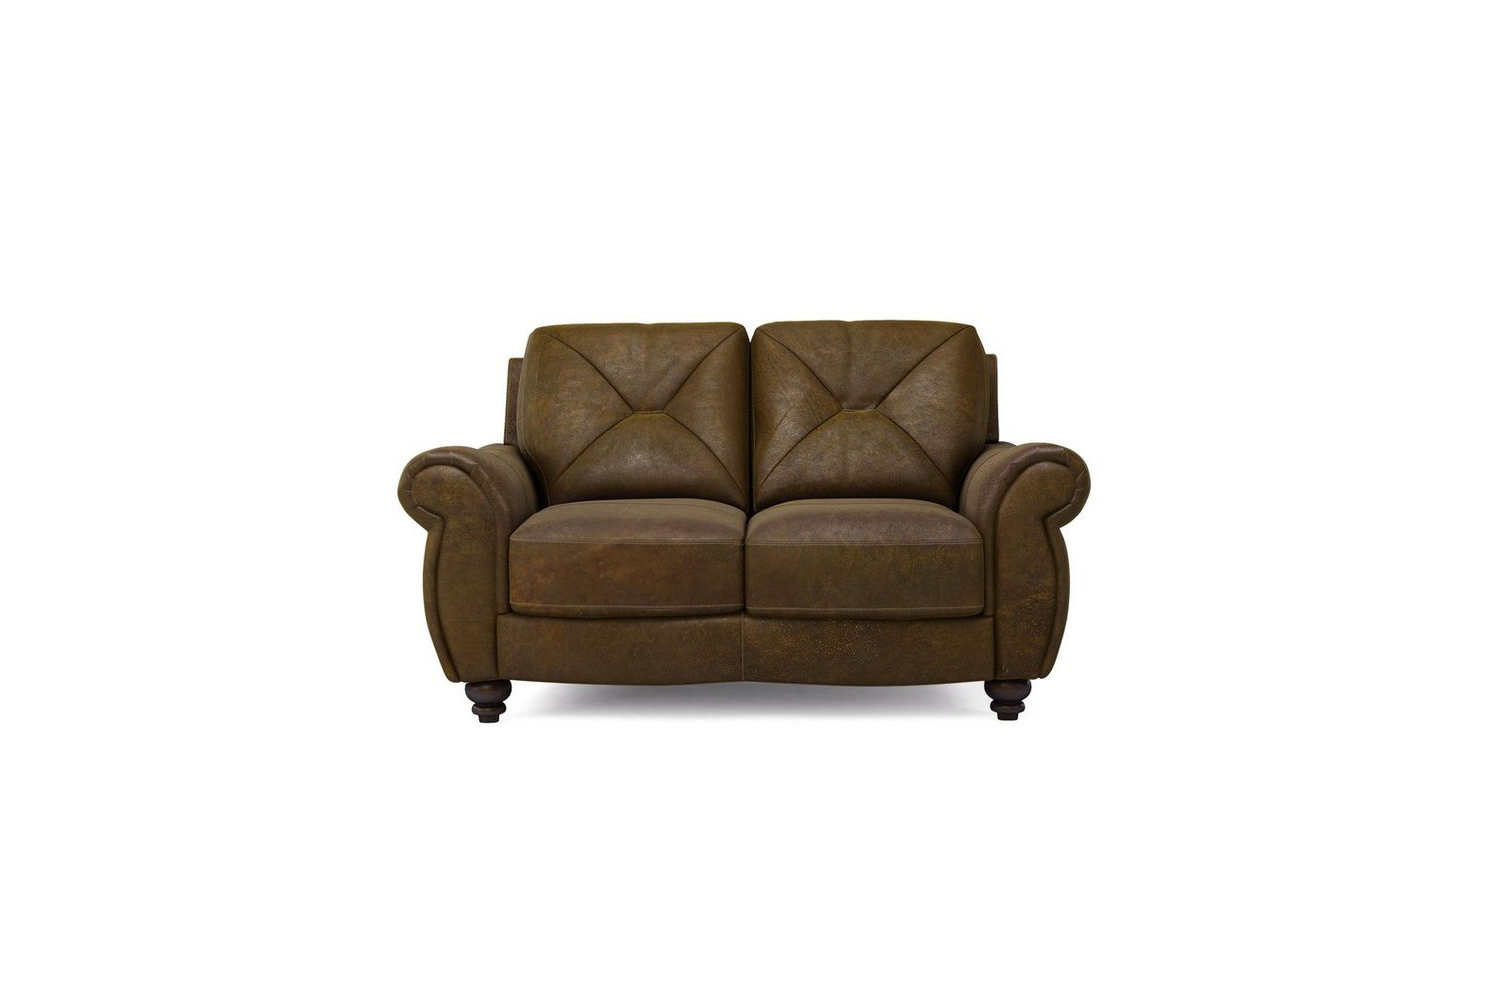 www sofa com high back two seater bed ashgill  leather comfyland